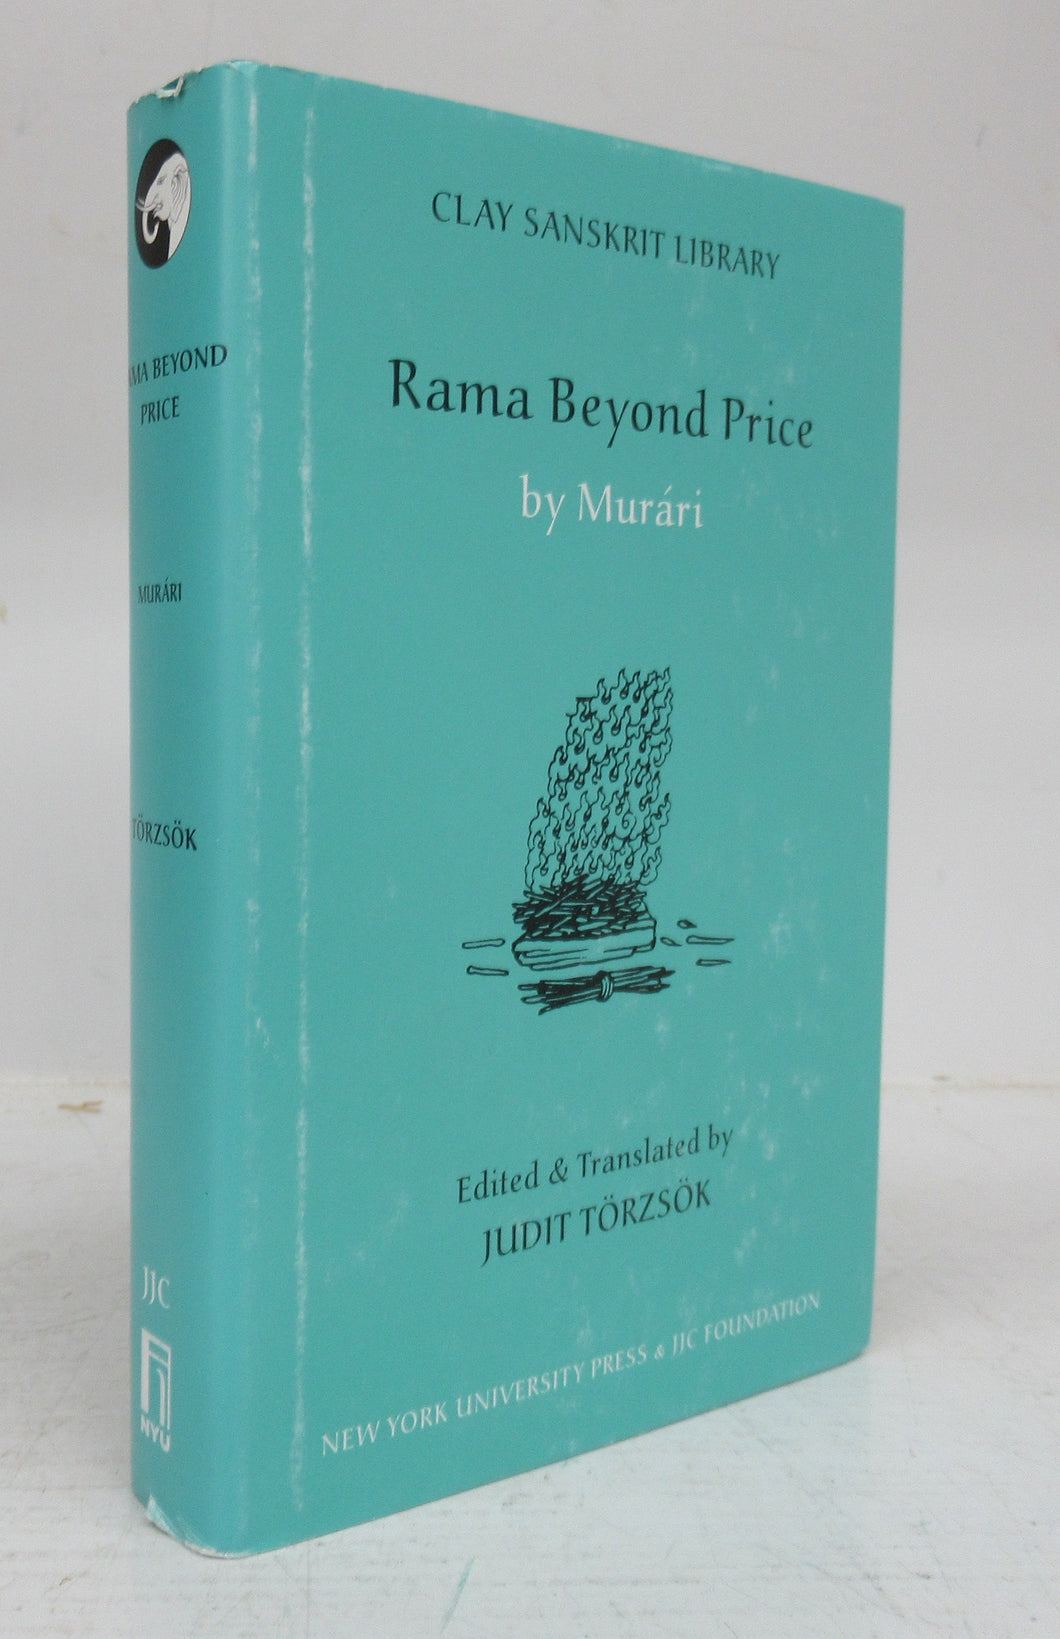 Rama Beyond Price